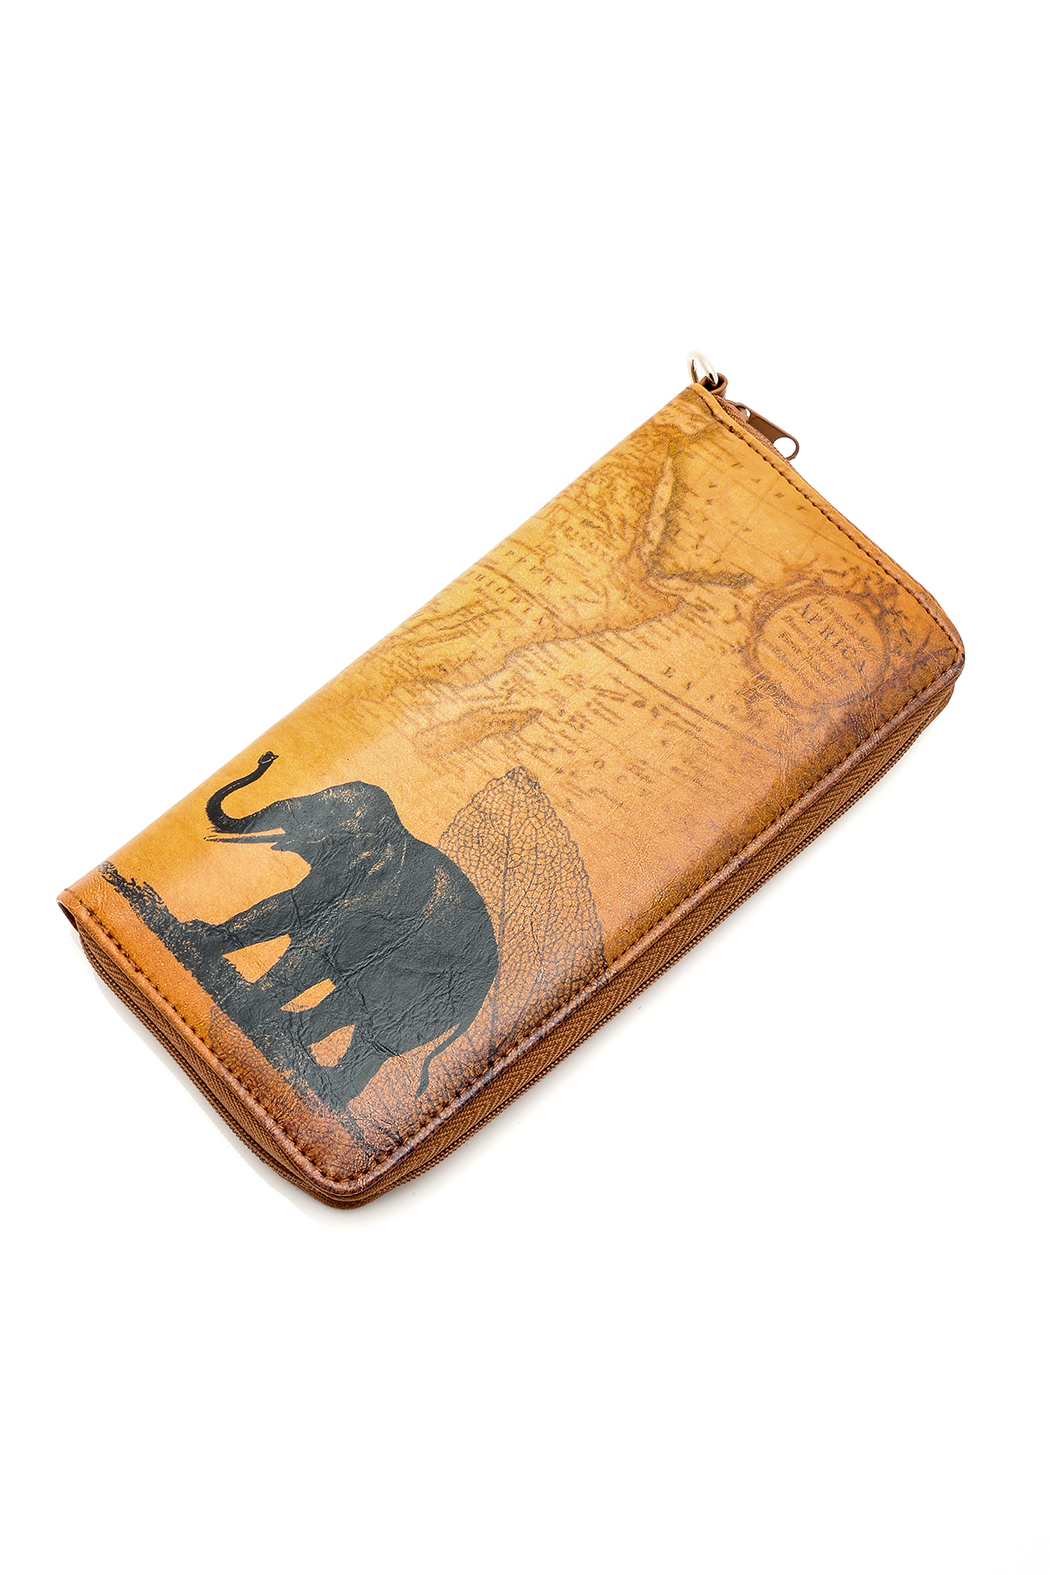 Patricia's Presents Elephant Wristlet Wallet - Main Image